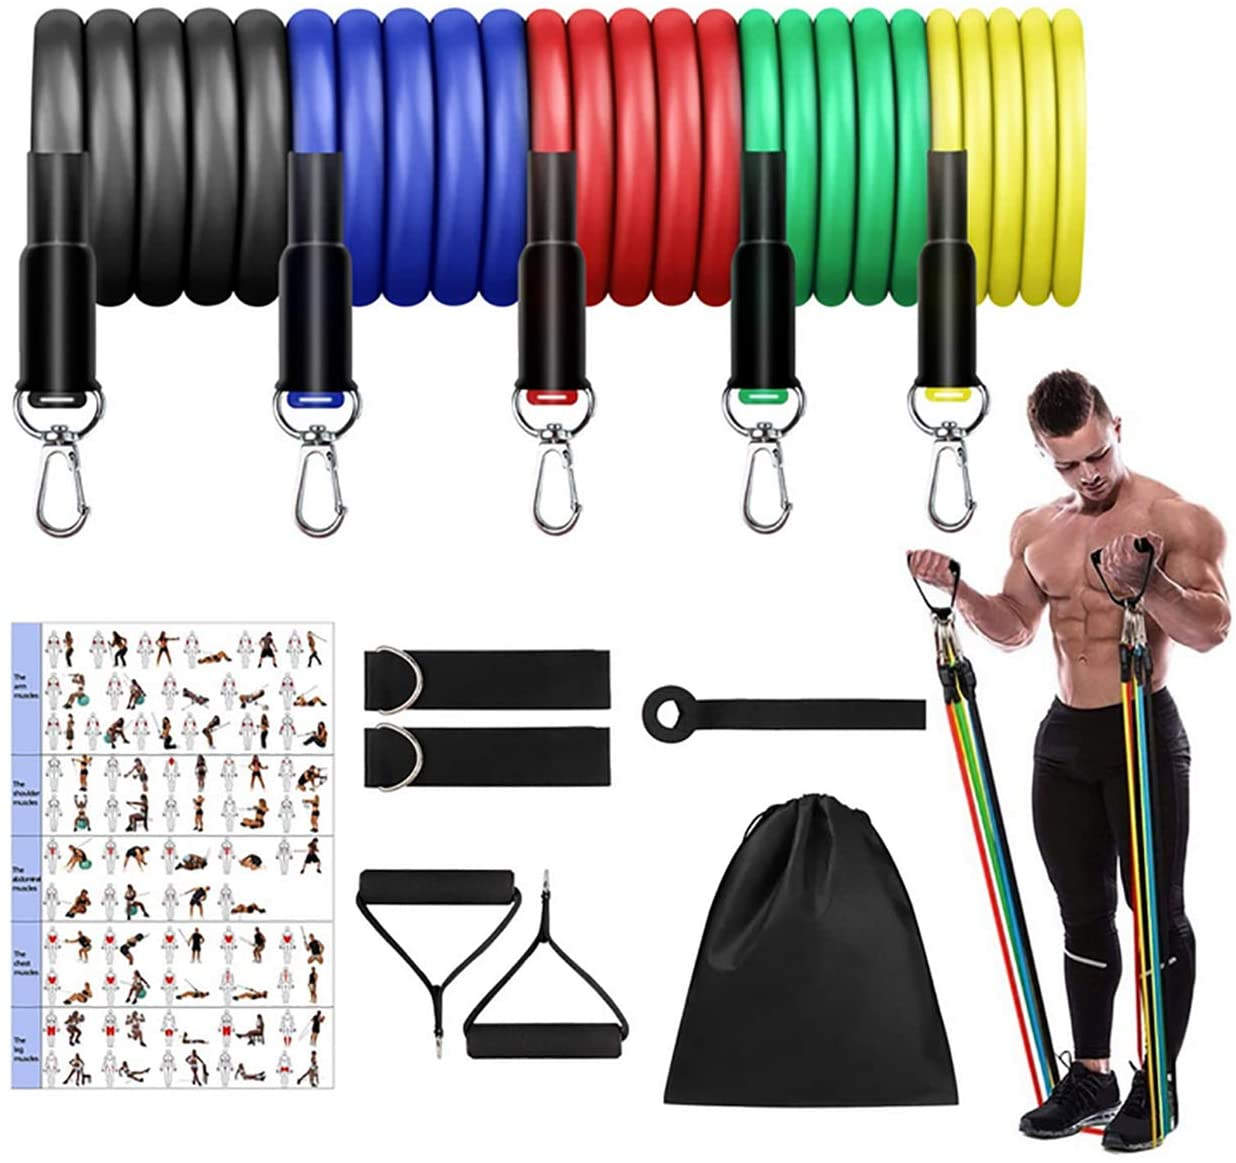 Wins Resistance Bands Set (11pcs), Exercise Bands with Door Anchor & Handles, Home Gym Equipment Men Women Legs Ankle for Resistance Training,Home Workouts,Fitness